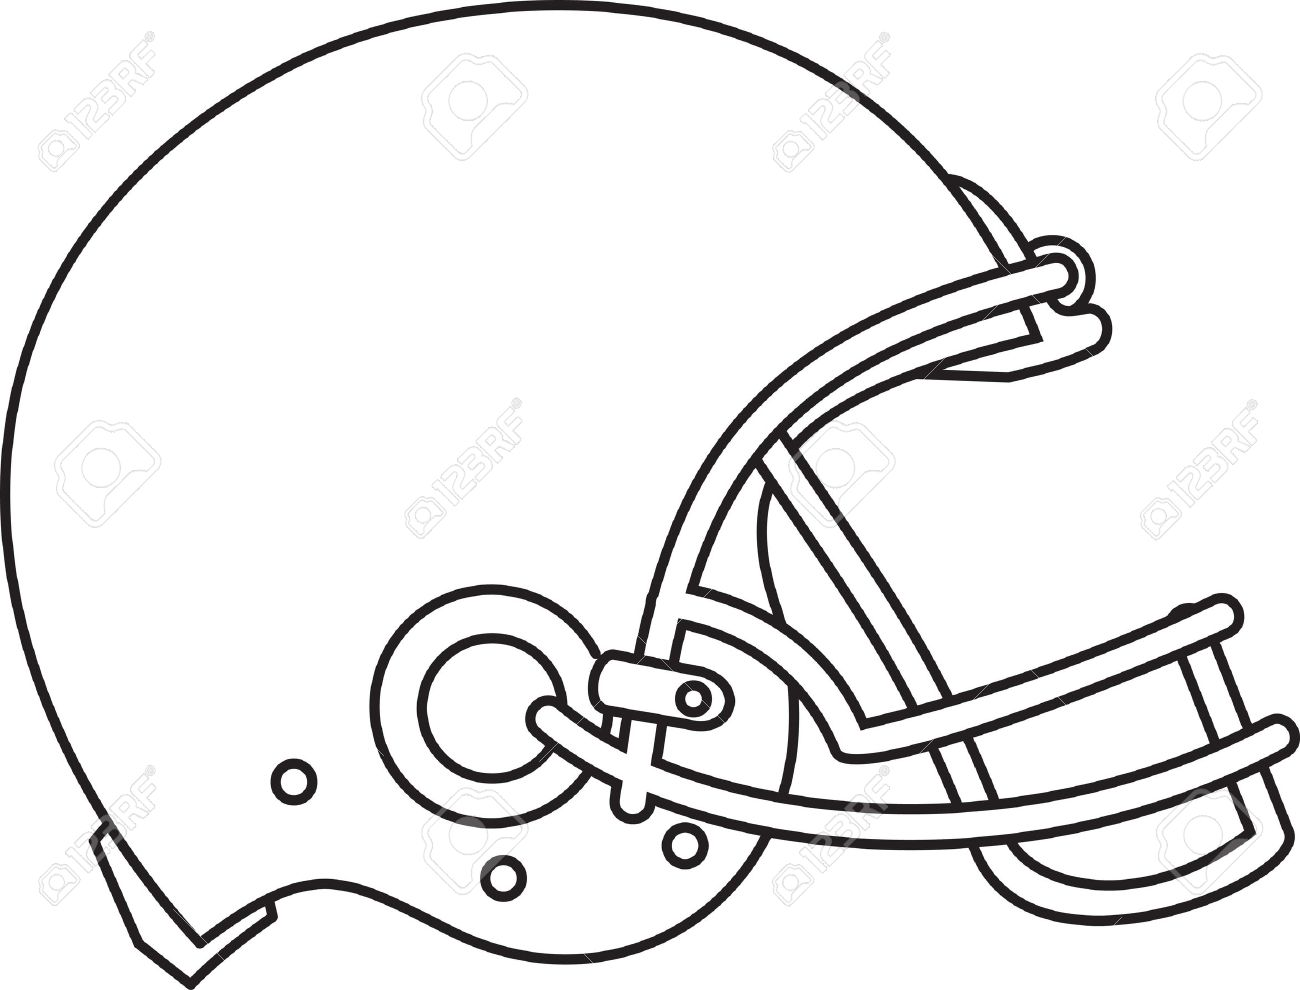 1300x990 Football Line Drawing Gallery Images